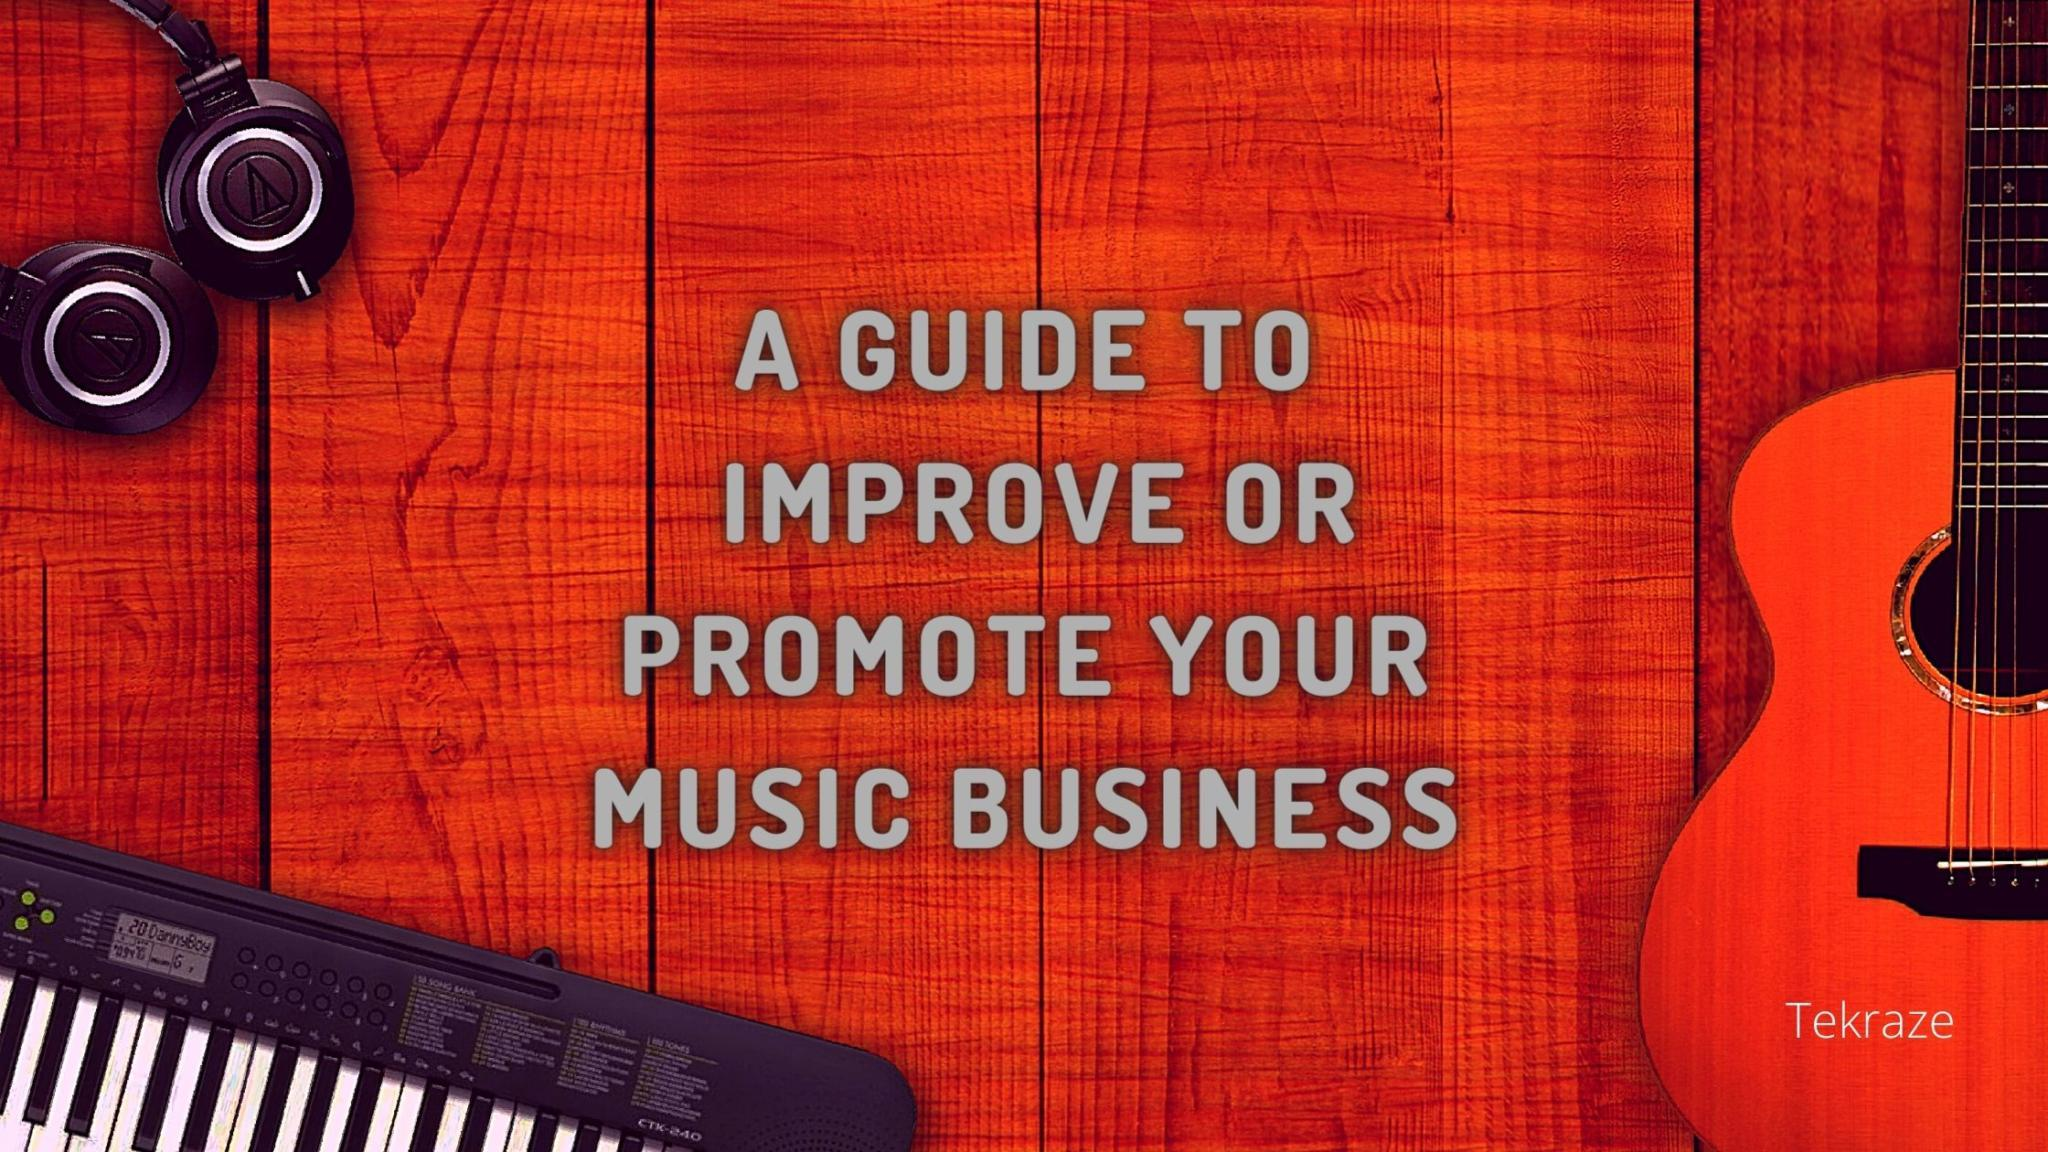 A Guide To Improve or Promote your Music Business